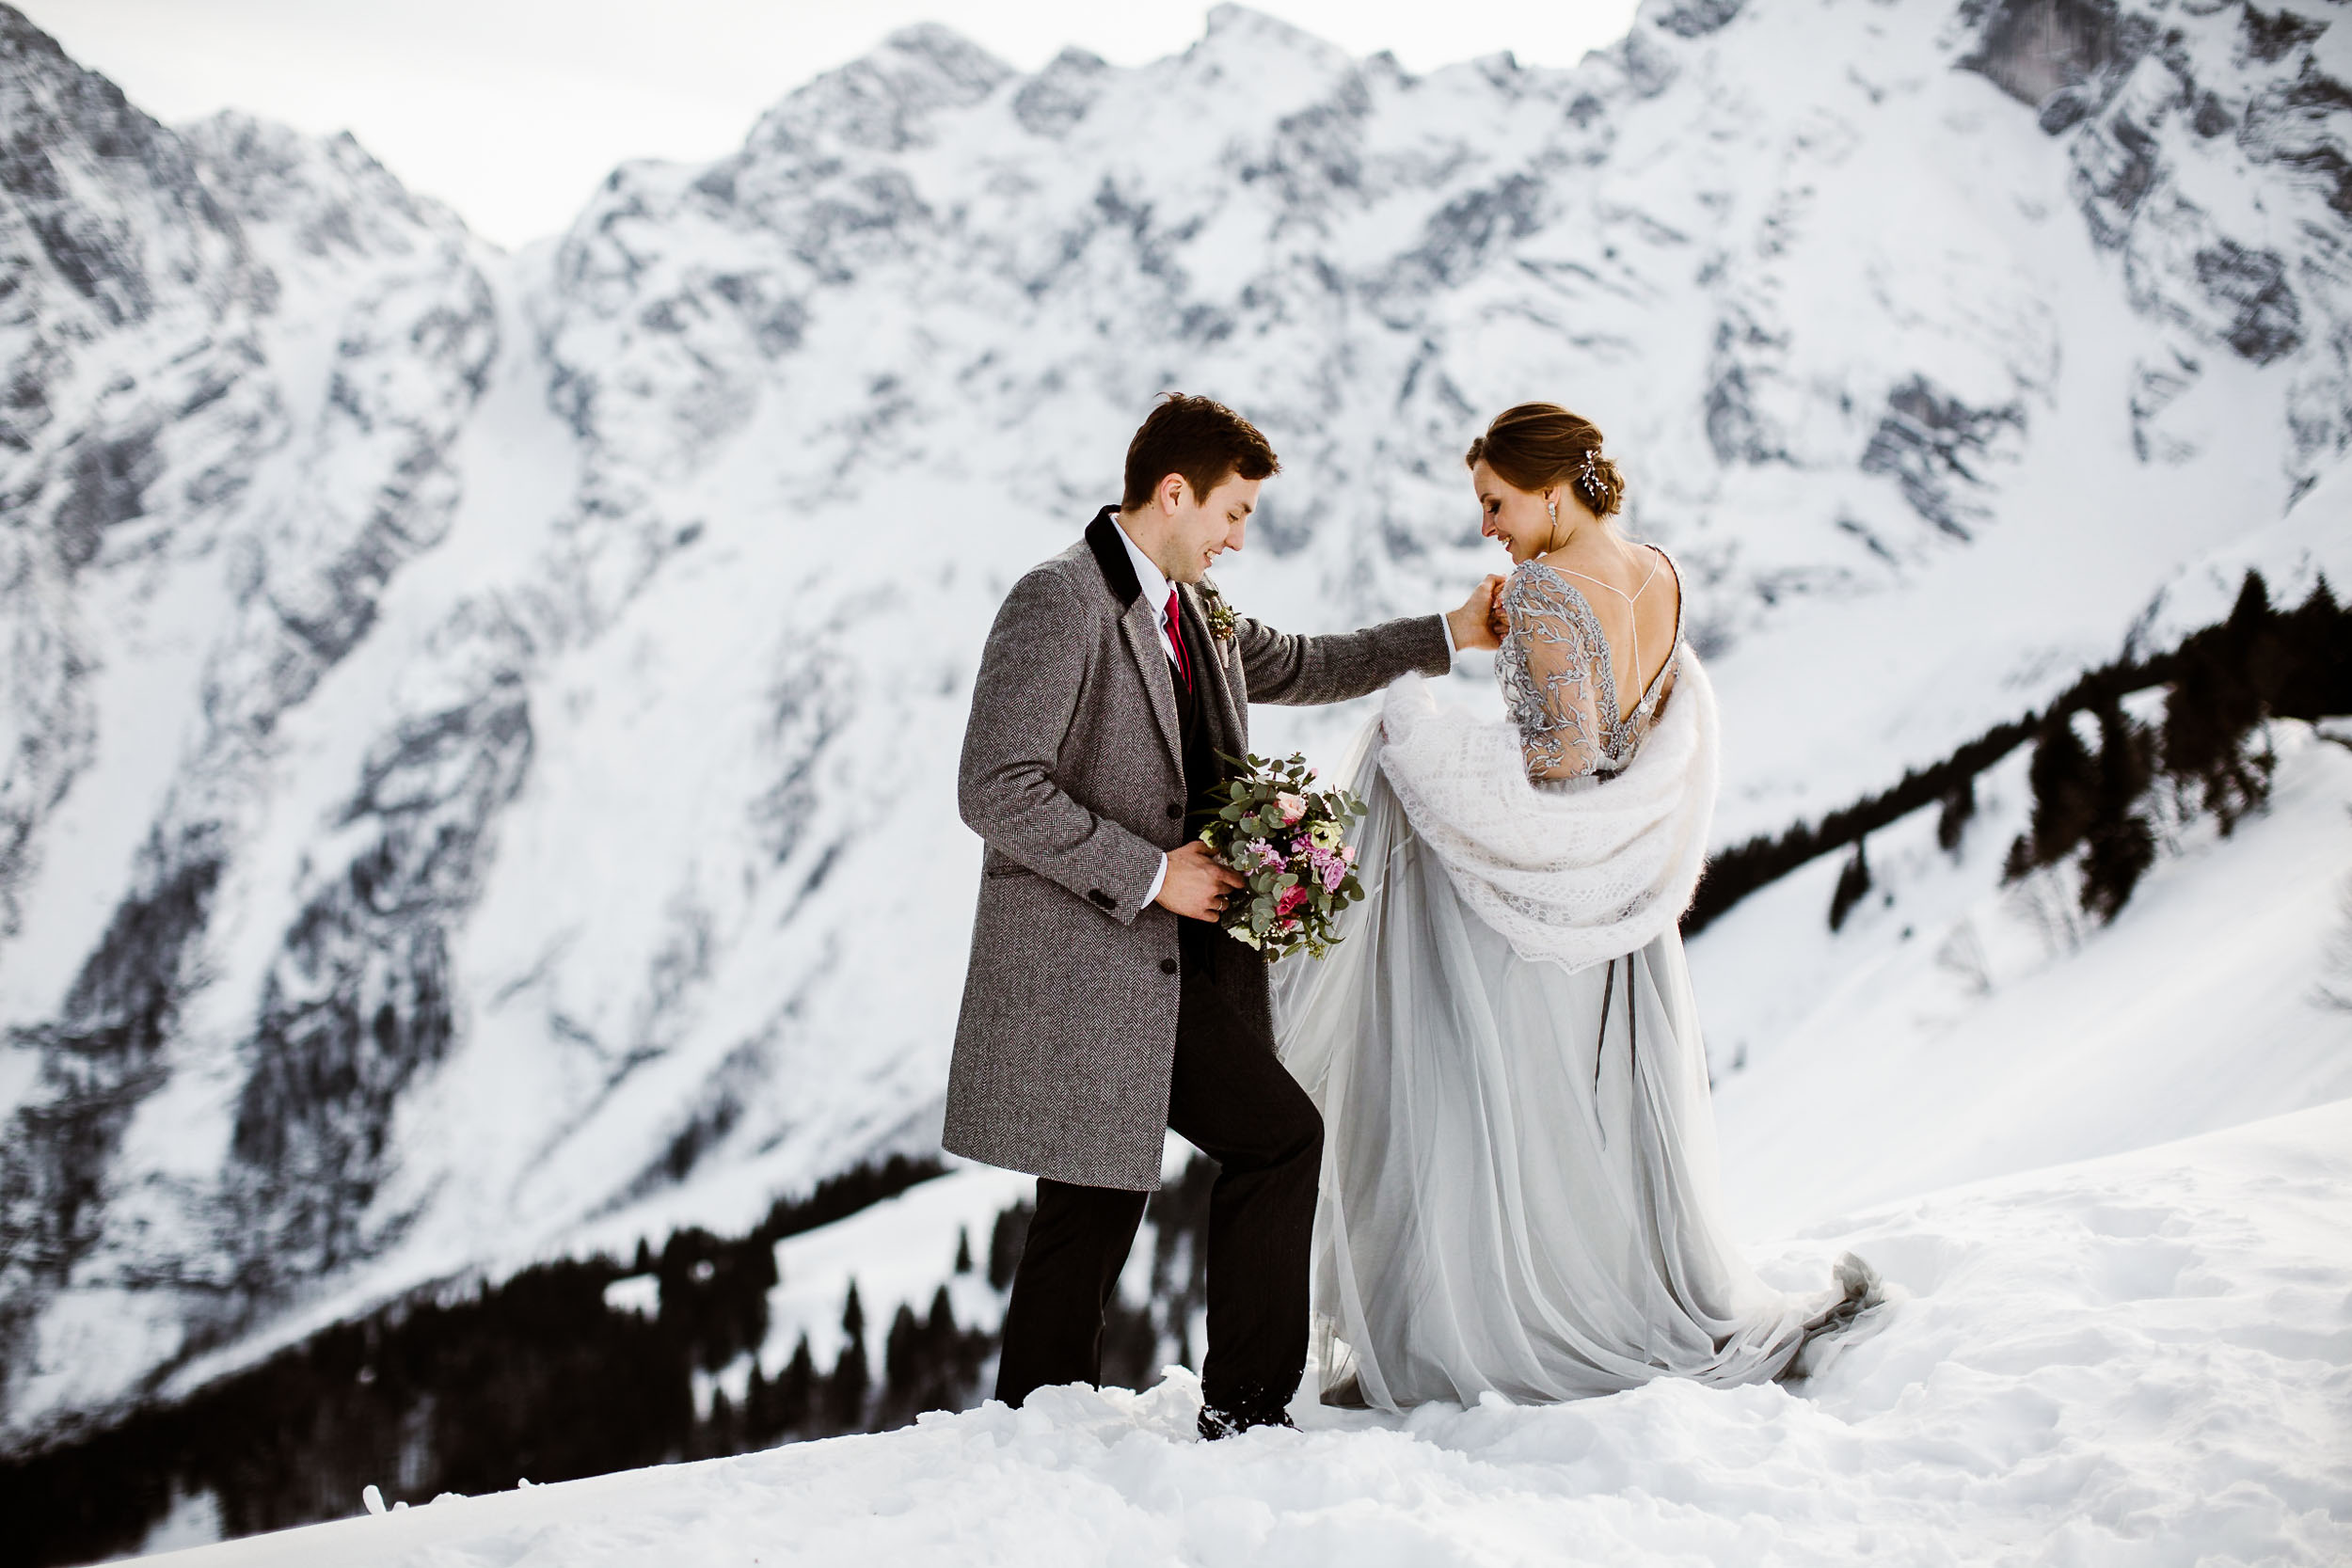 Winter-wedding-Tirol